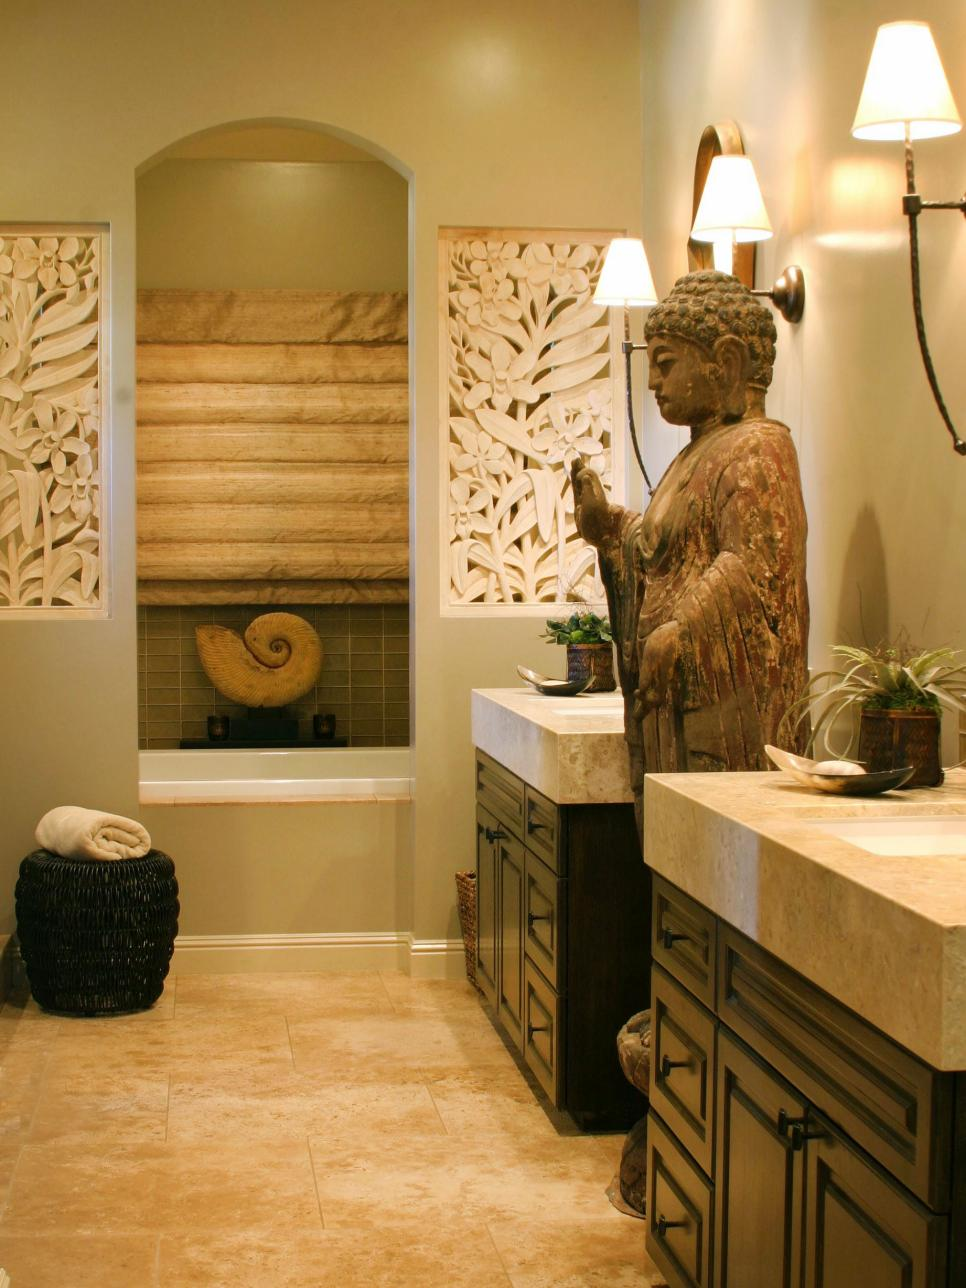 Asian design ideas hgtv Japanese bathroom interior design